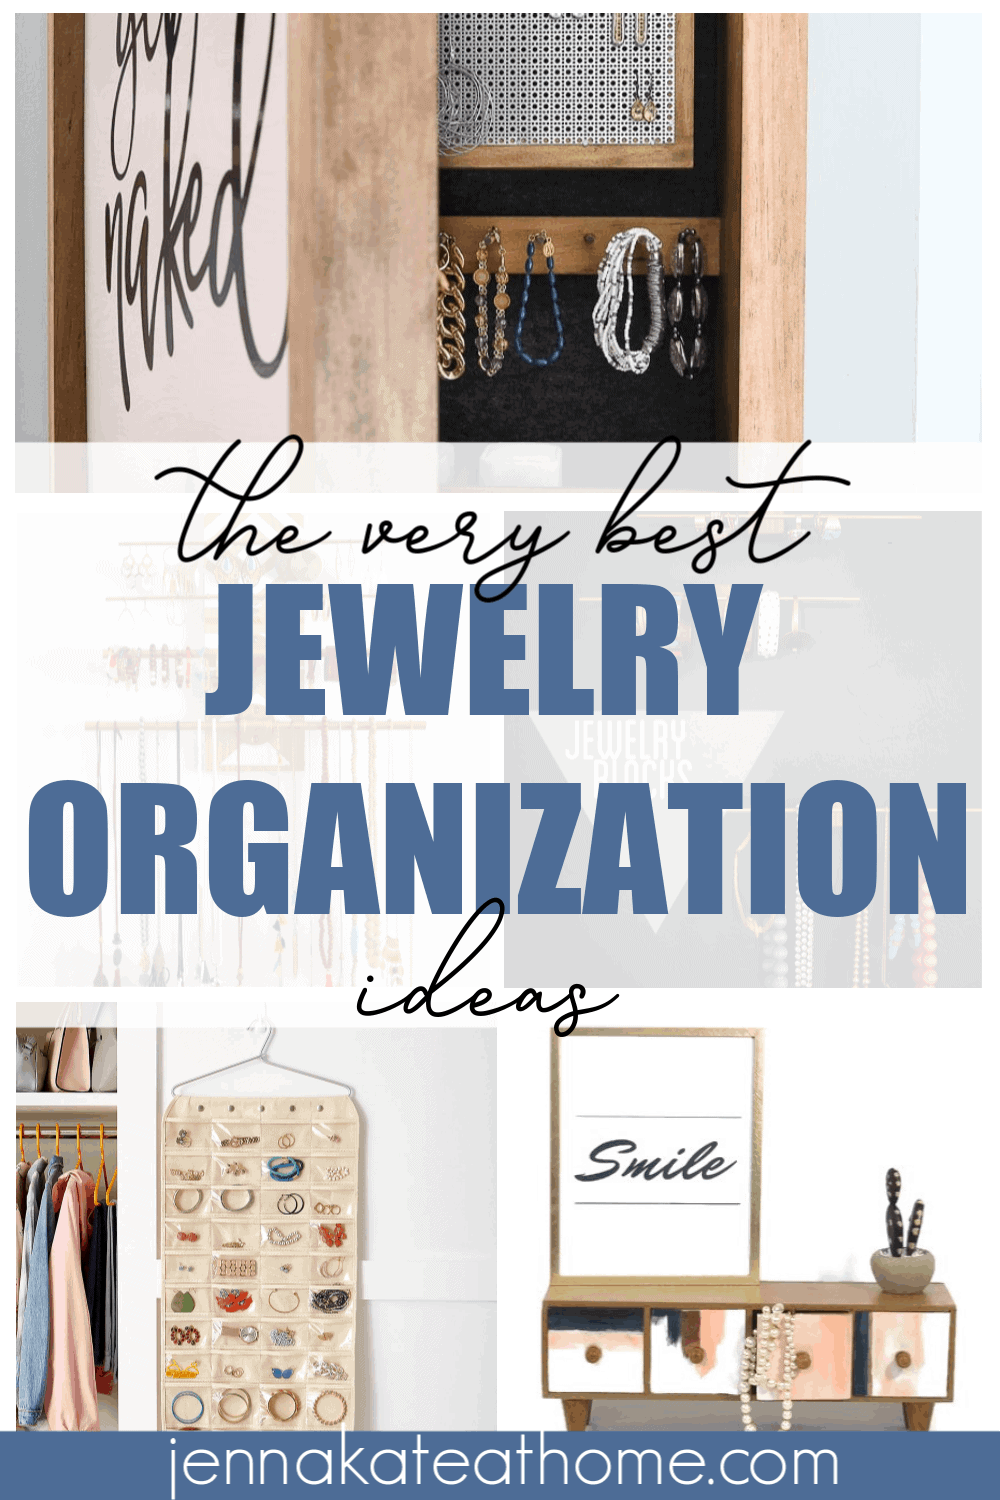 You'll love these creative ways to store & organize your jewelry. Includes smart ways to DIY your own jewelry storage as well as organization ideas you can buy and use in your drawer, closet or dresser.